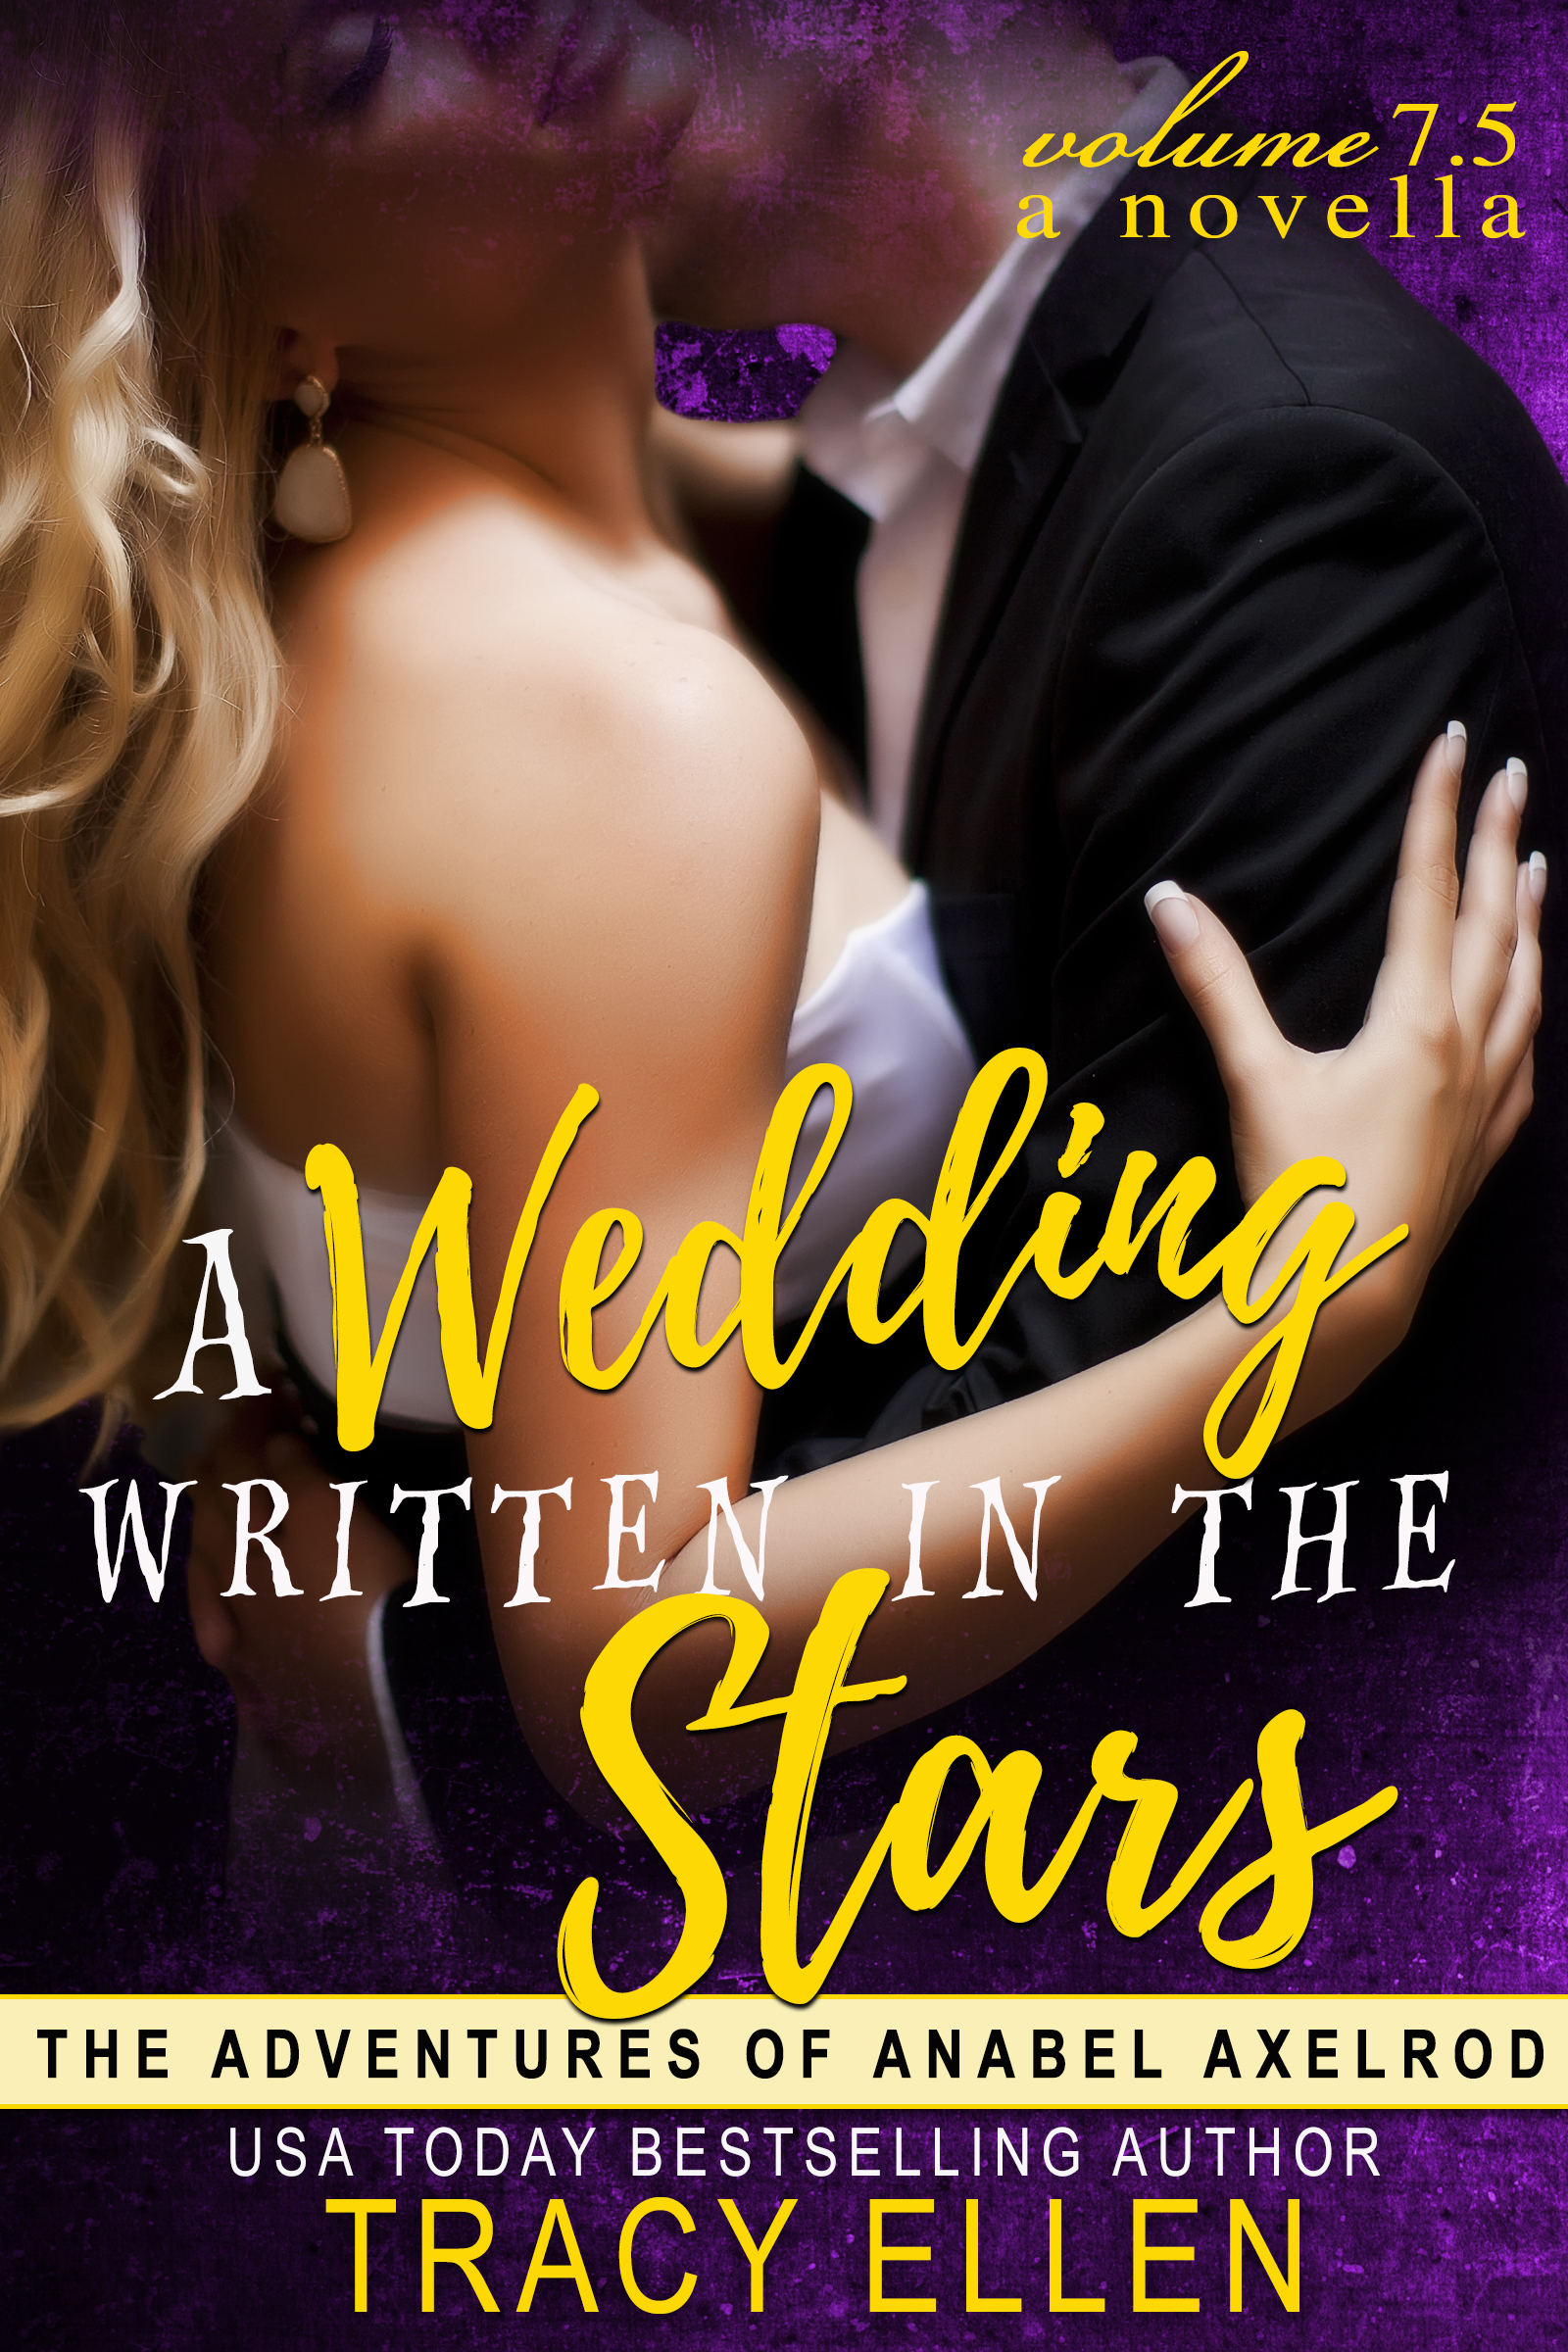 75AWEDDINGWITSTARS USA.jpg